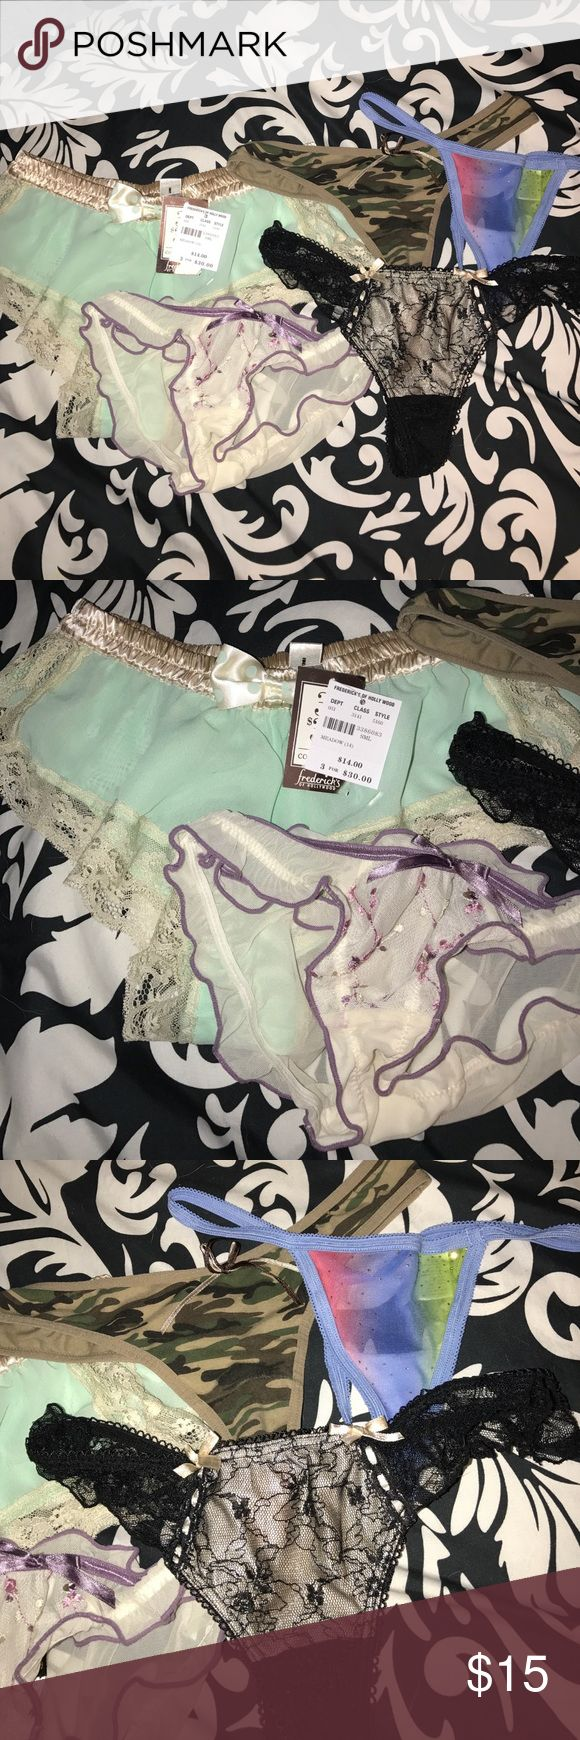 💋 Panty Set 💋 • 5 Panty Set. Never worn-Brand New. 3 Thongs & 2 Cheeky Panties. ( Green Sheer Panties are from Frederick's of Holly Wood & still has tags. Original Price $14)  Size : Smalls. 💌 Ask all questions prior to purchasing. 🛍 Bundles encouraged for discounts. 📦 Fast Shipment. 🎉Happy Shopping🎉 Intimates & Sleepwear Panties